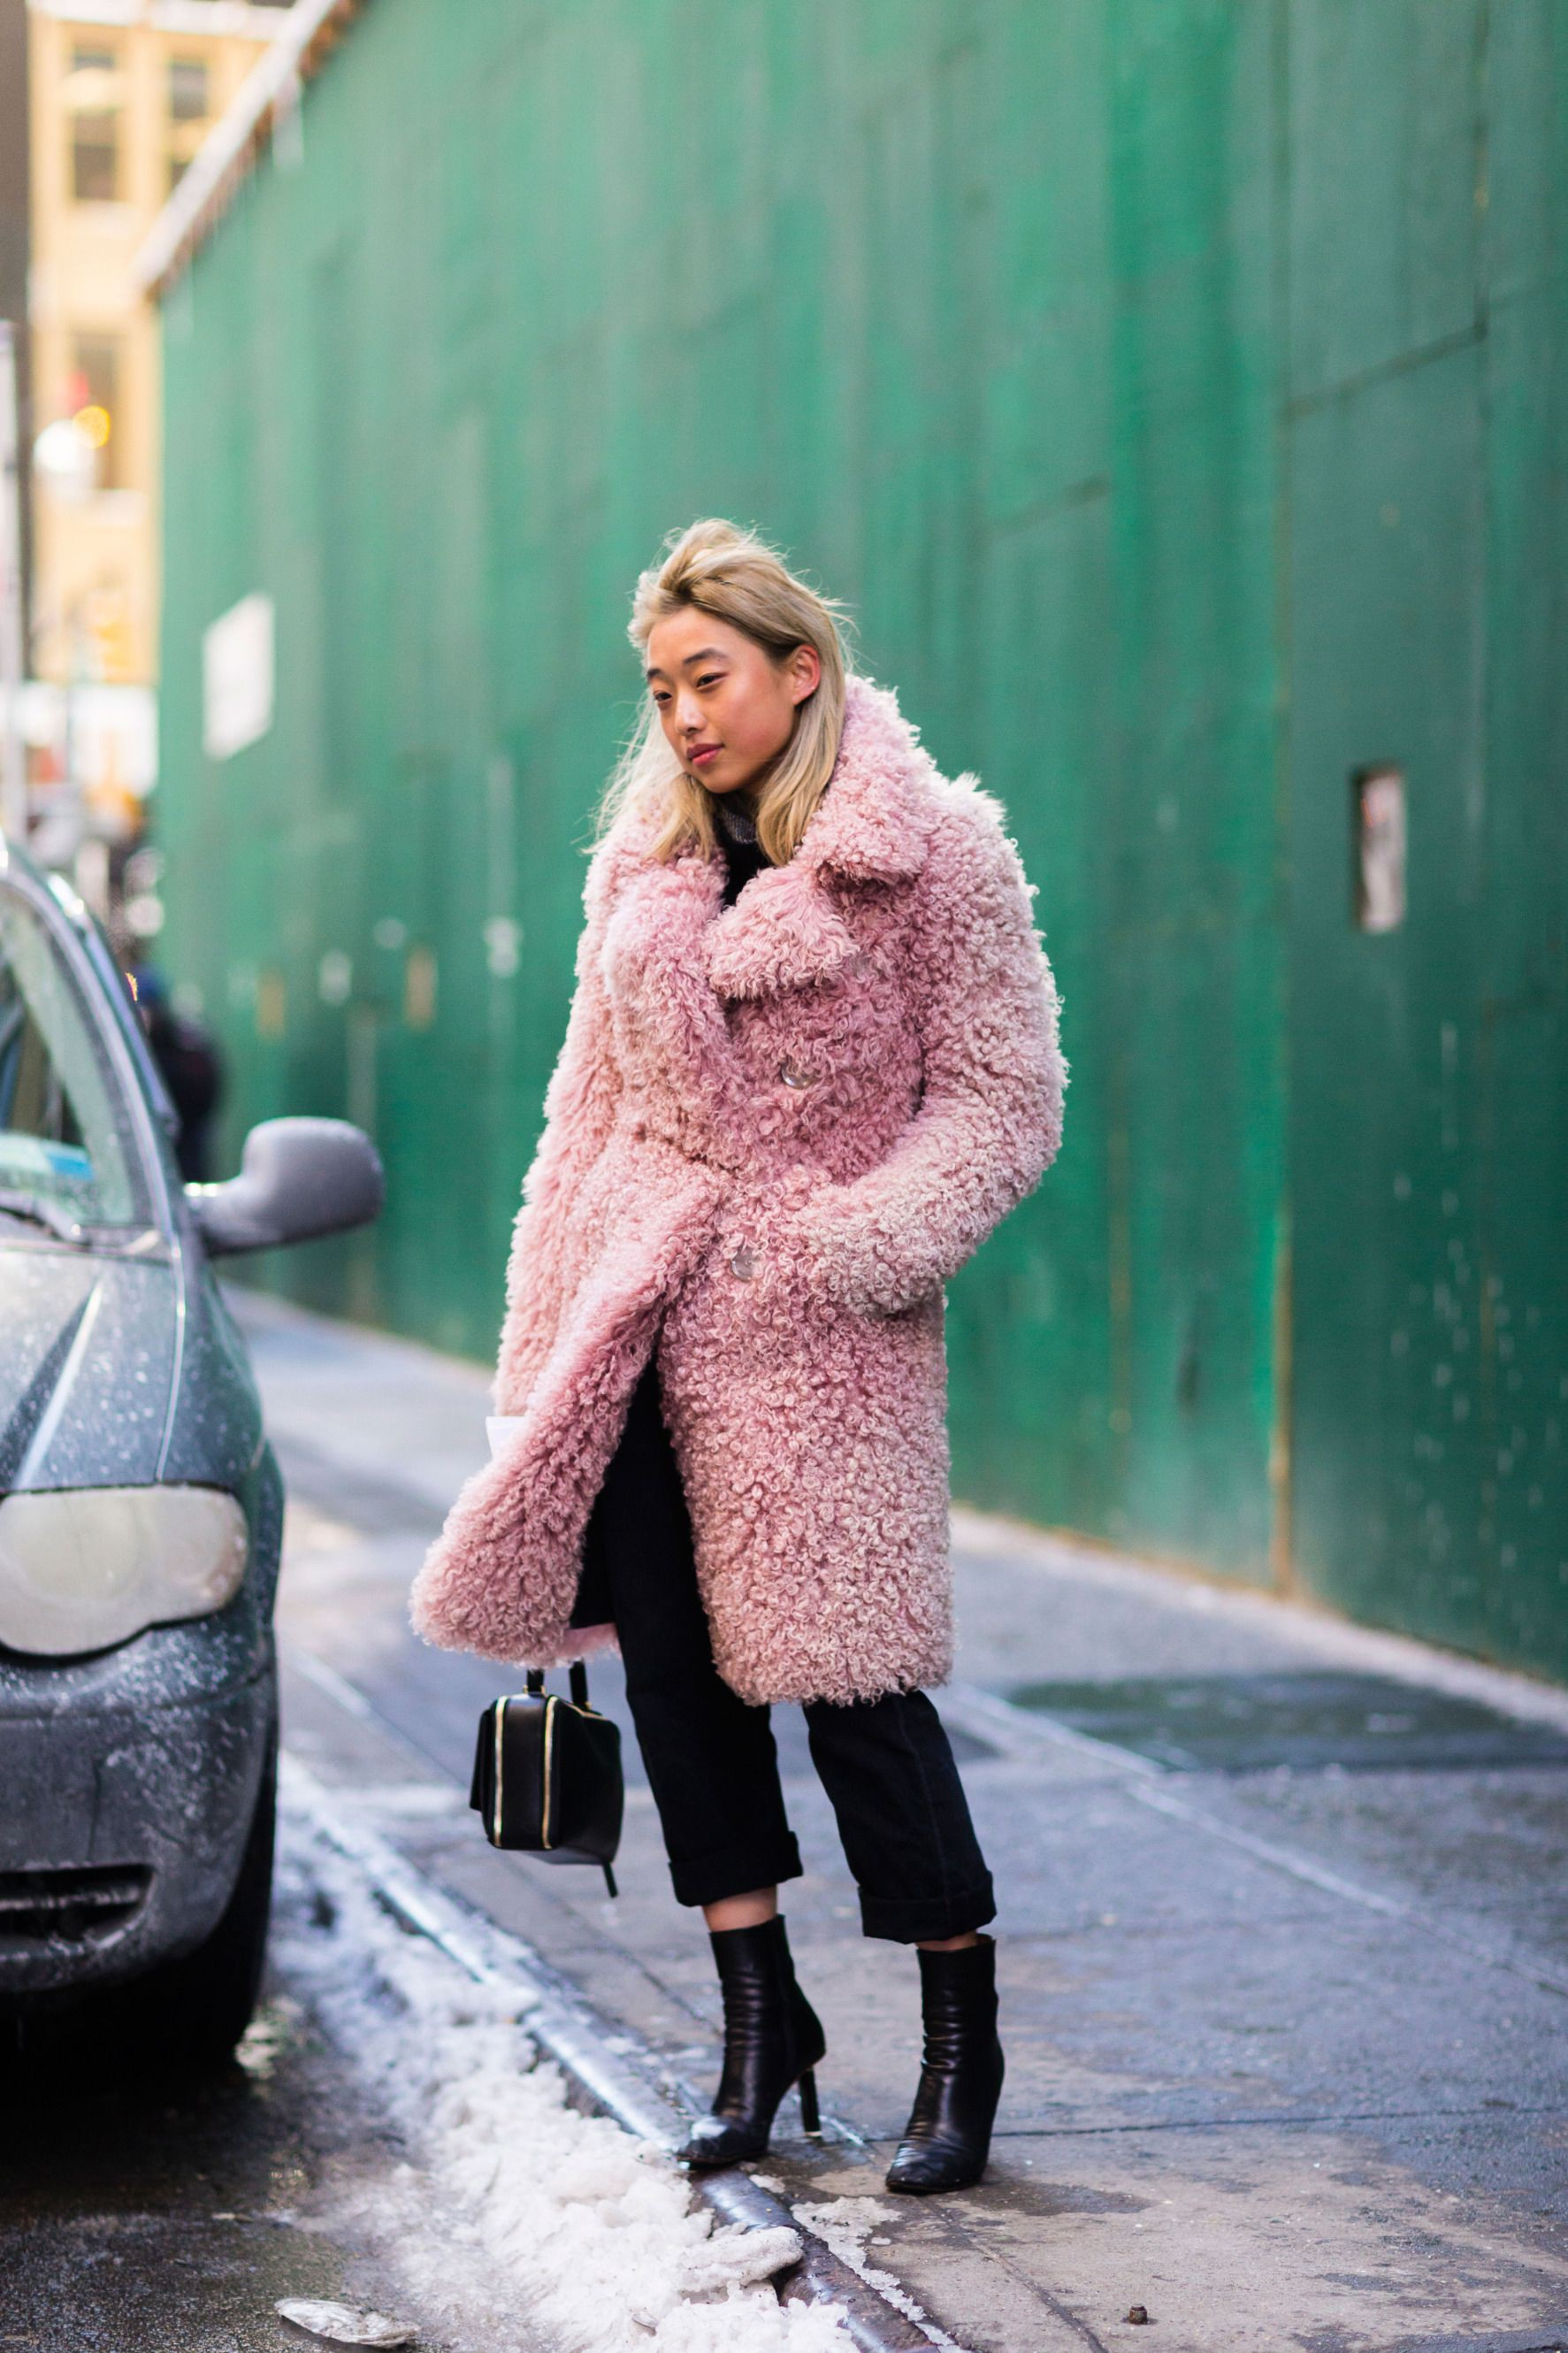 Margaret zhang fur coat, street fashion, fur clothing, fake fur